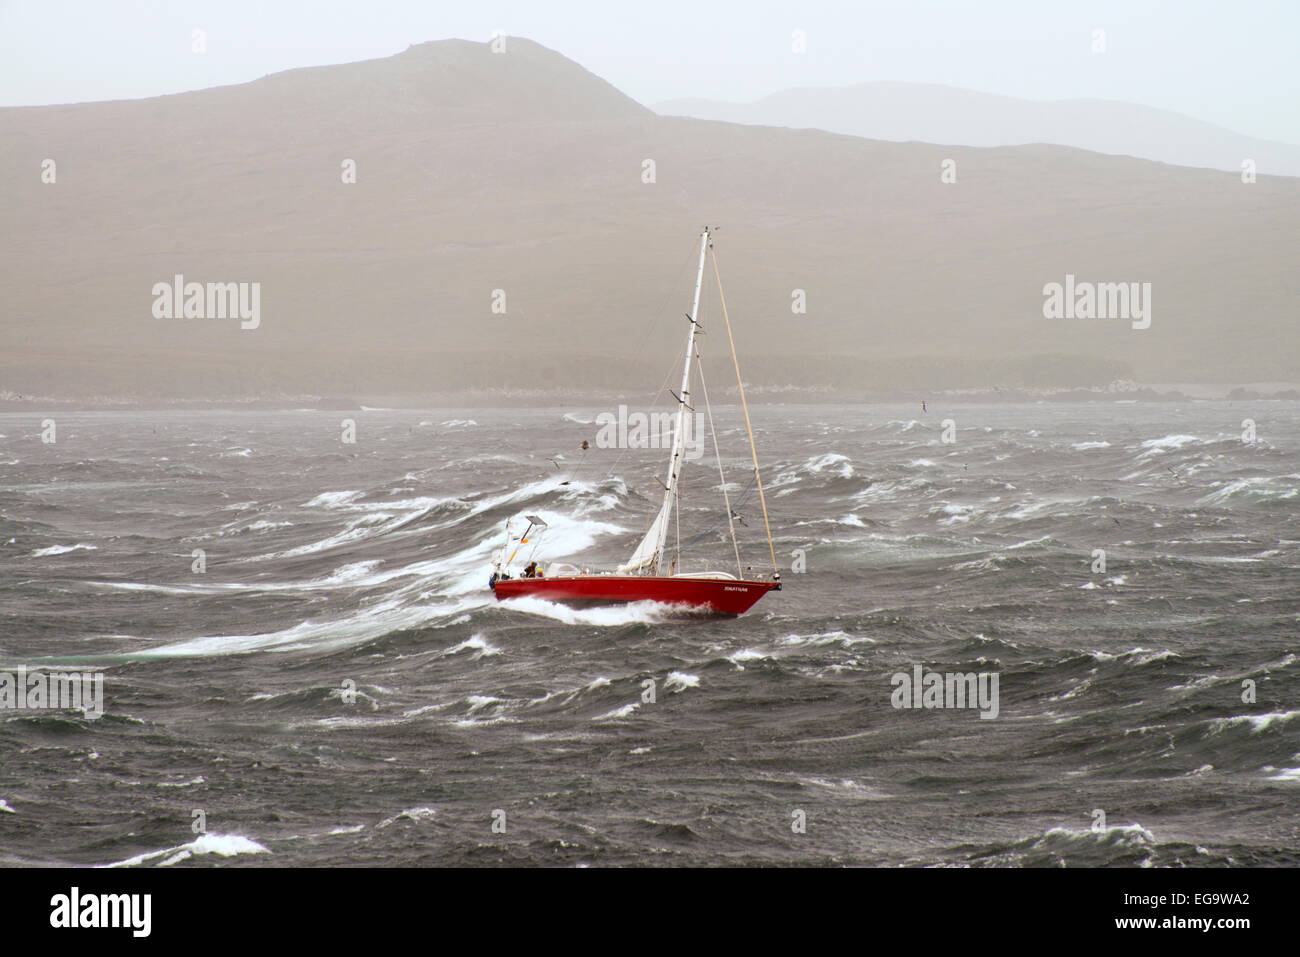 Yacht Jonathan rounding Cape Horn Tierra del Fuego Chile in a force 8 gale - Stock Image